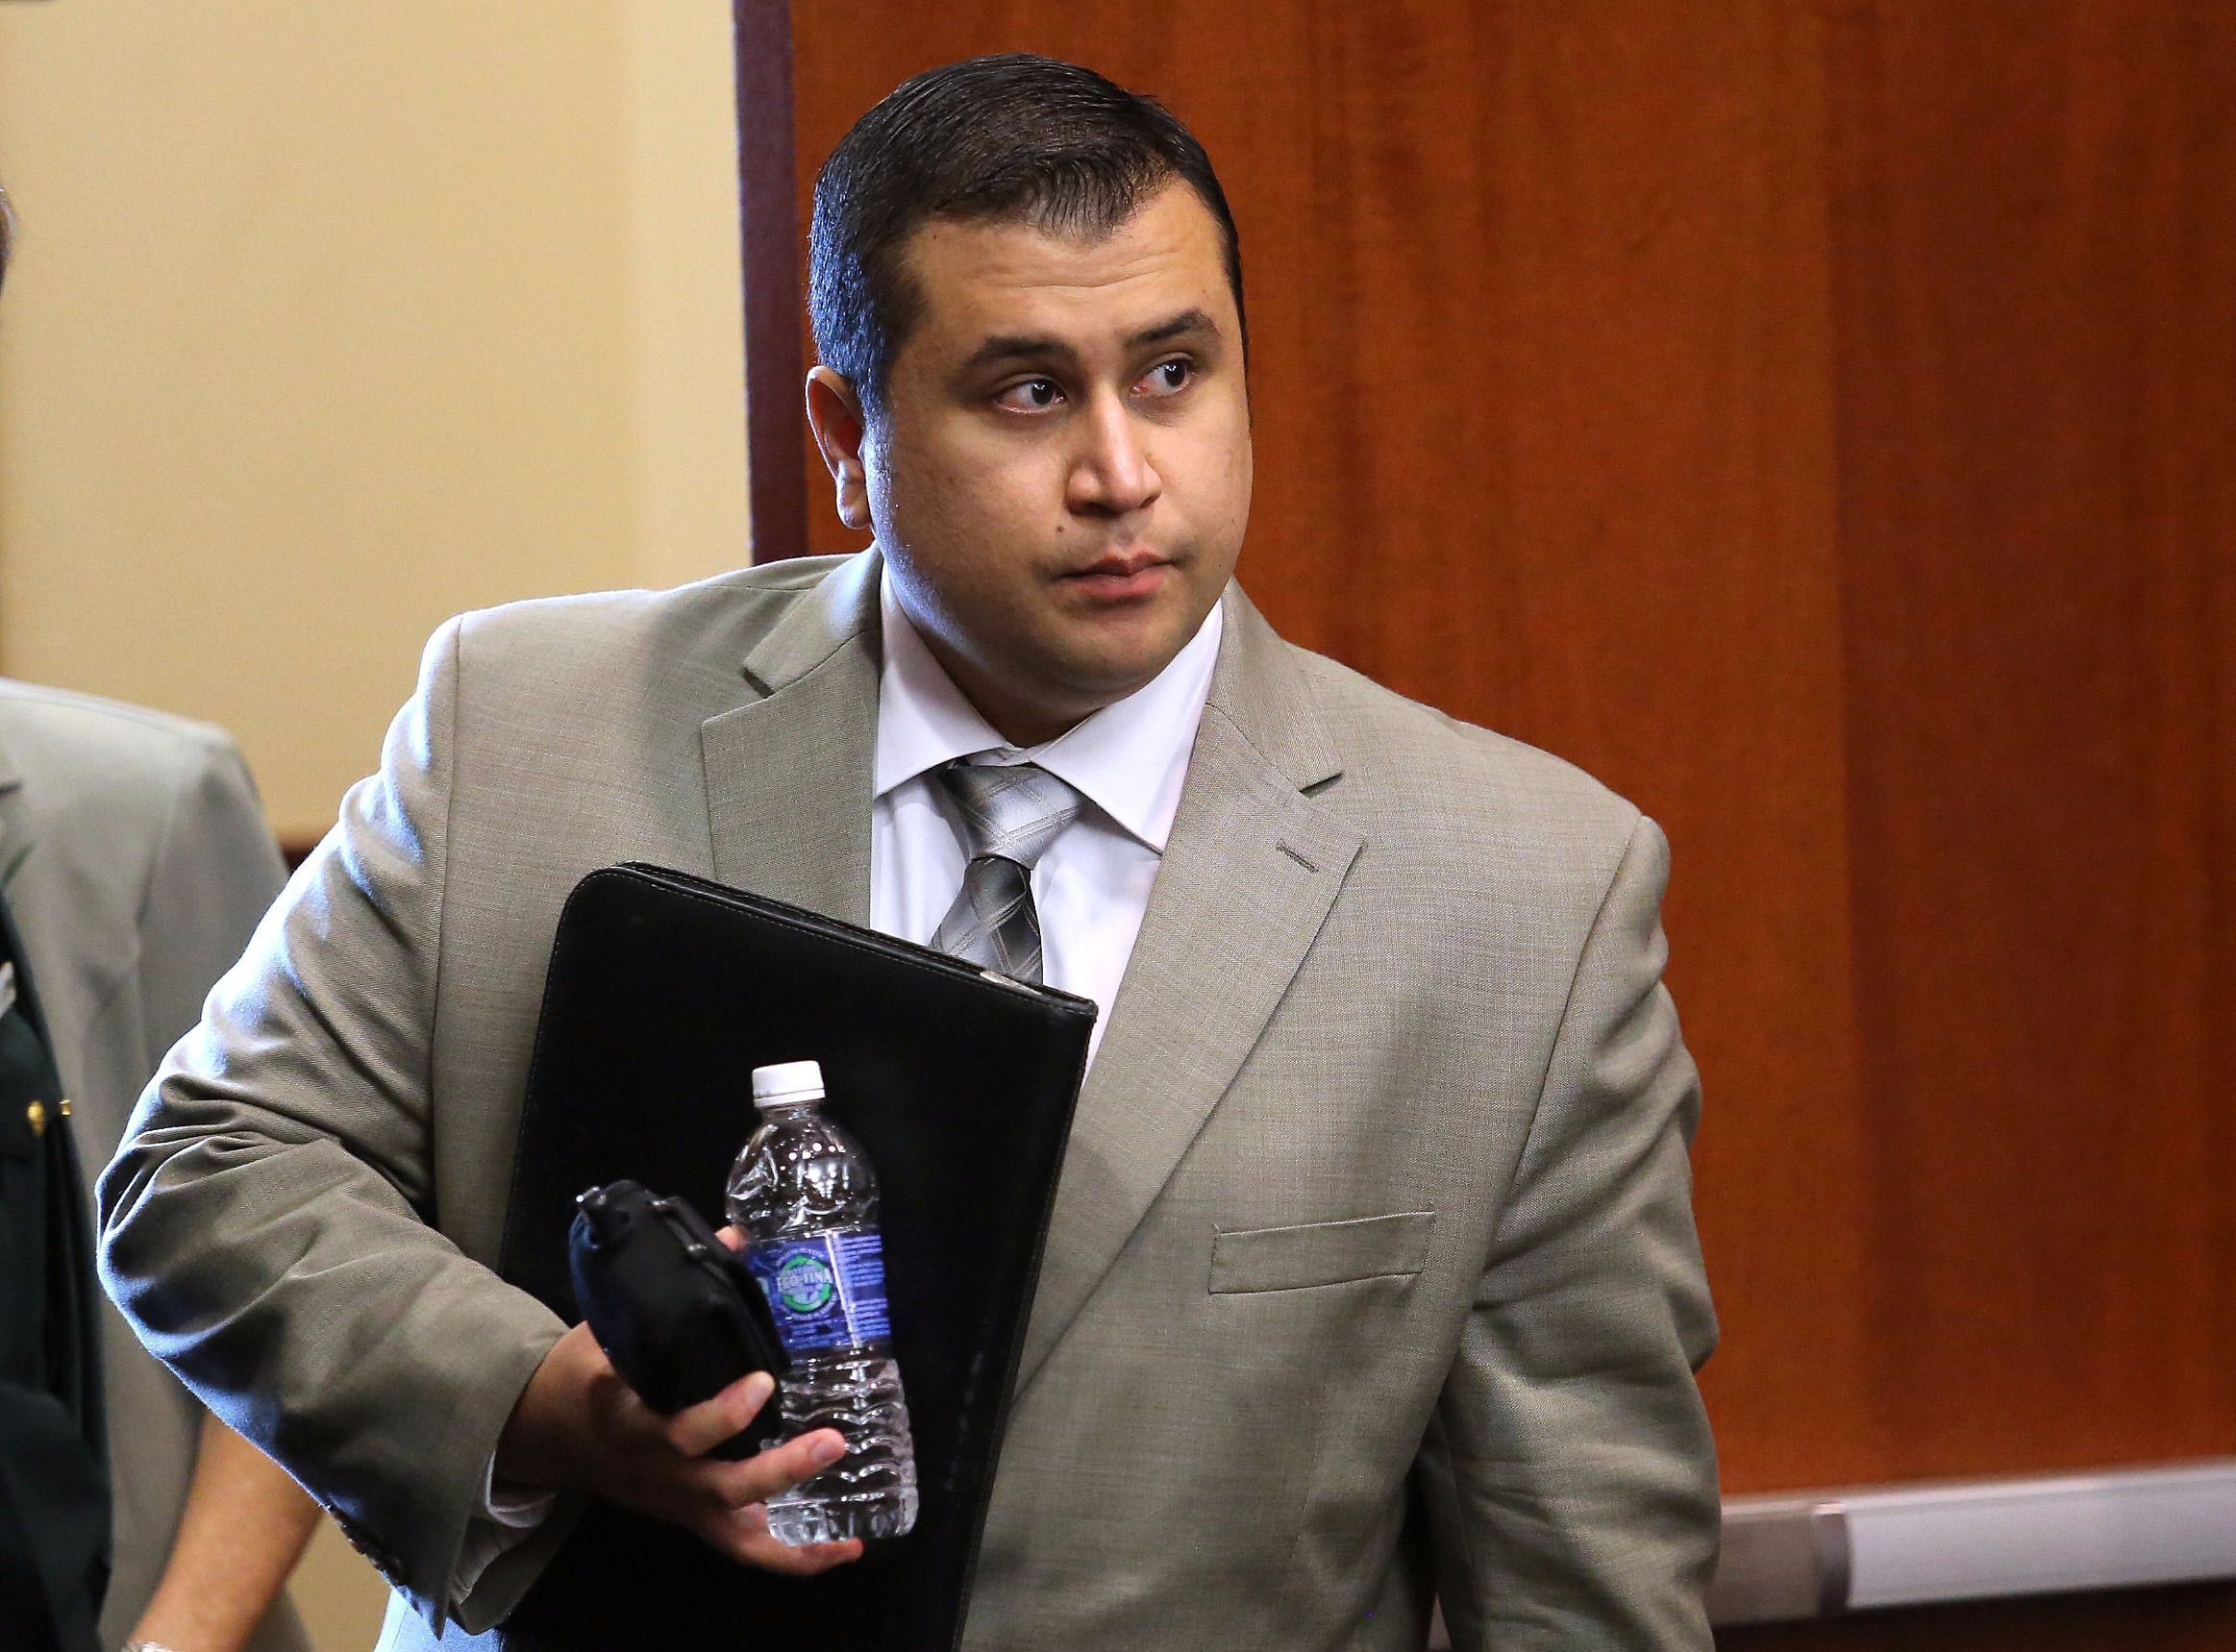 George Zimmerman arrives in the courtroom for the 21st day of his trial.